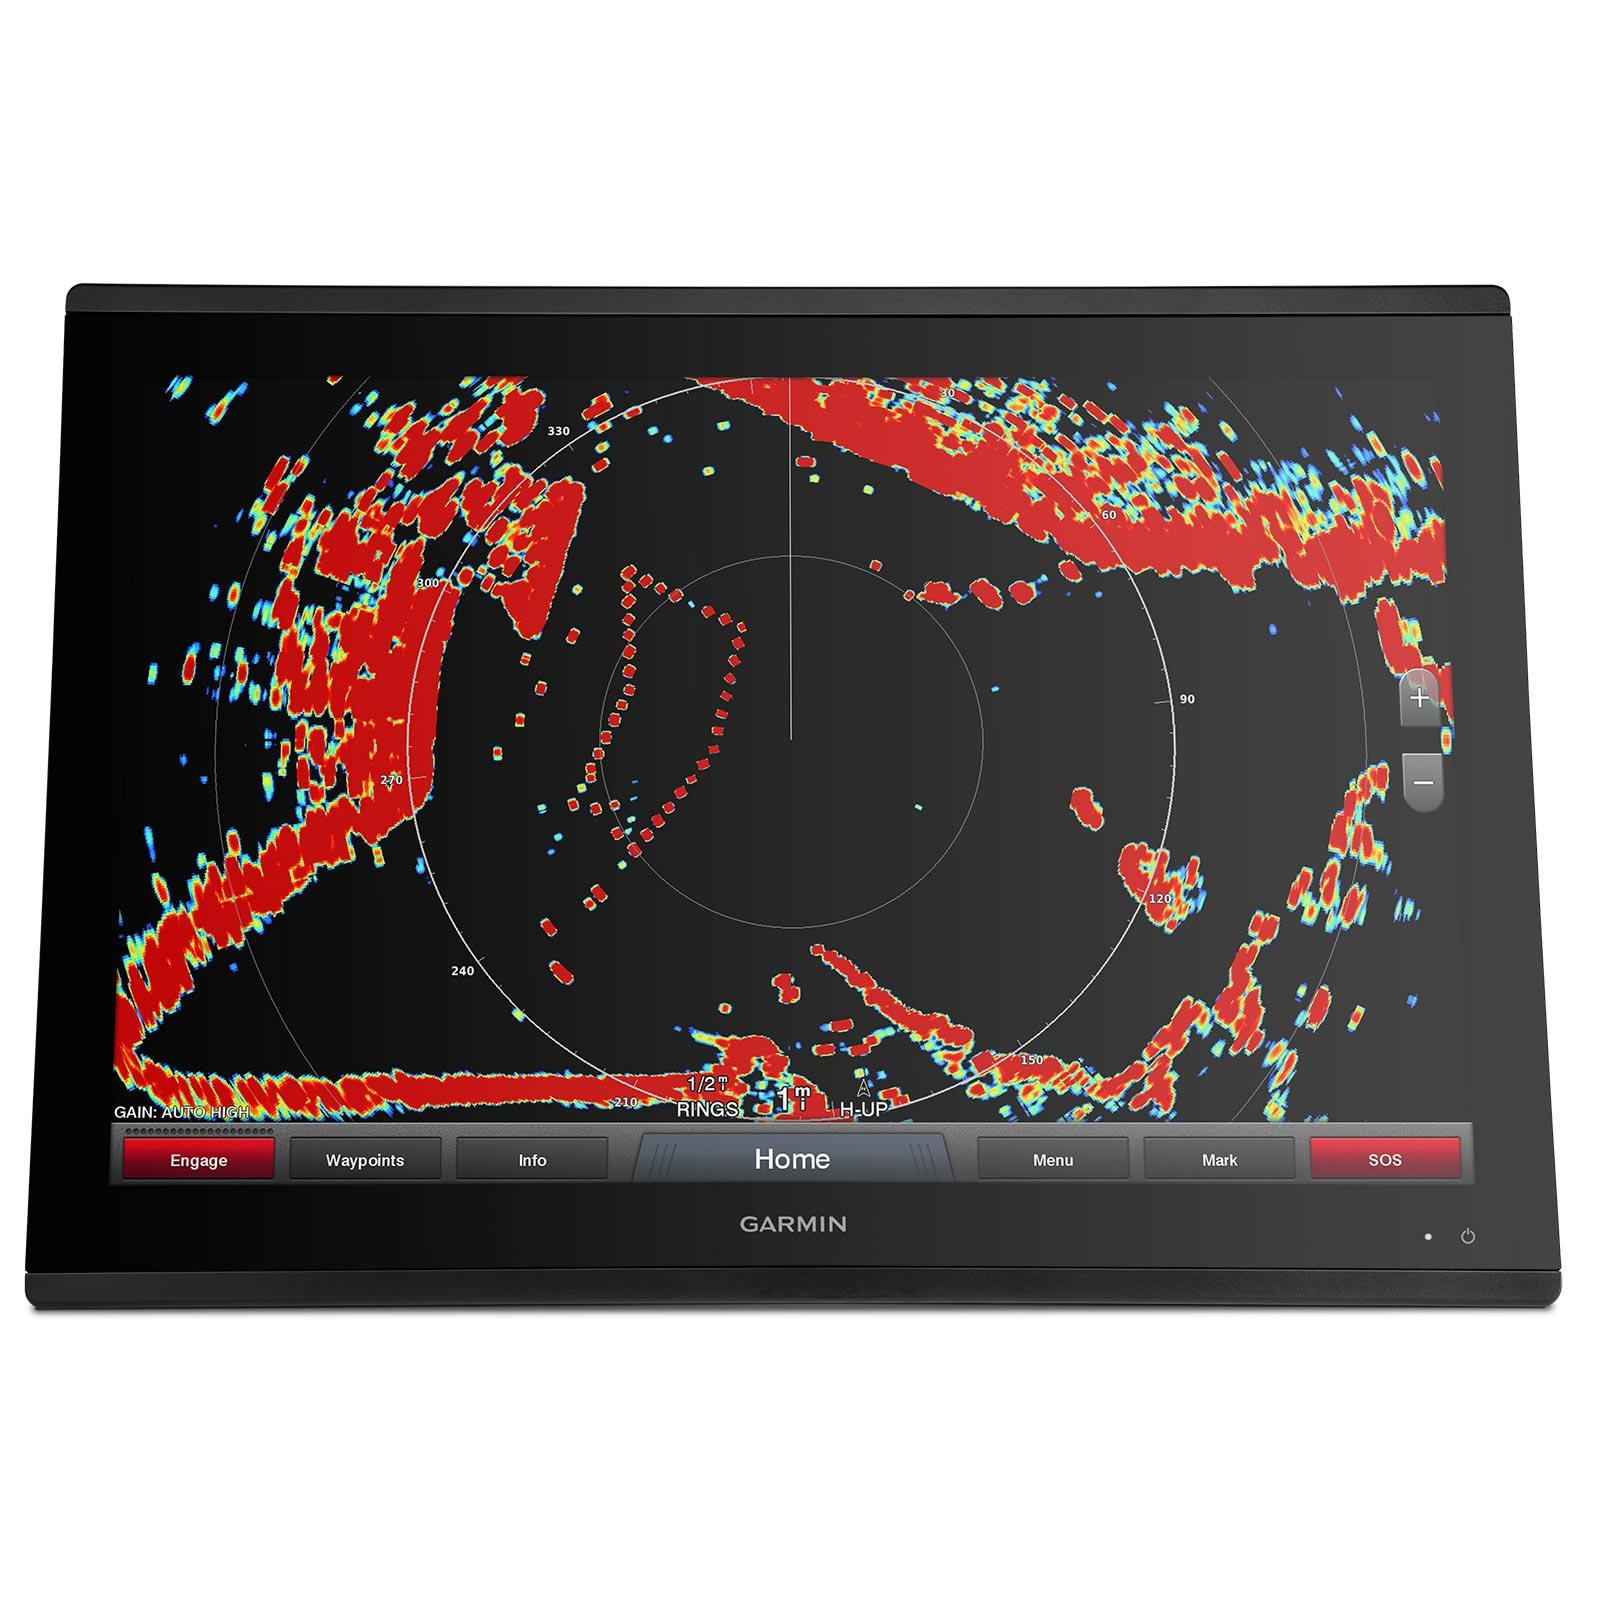 Garmin GPSMAP 8624 MFD with Mapping Color Screen